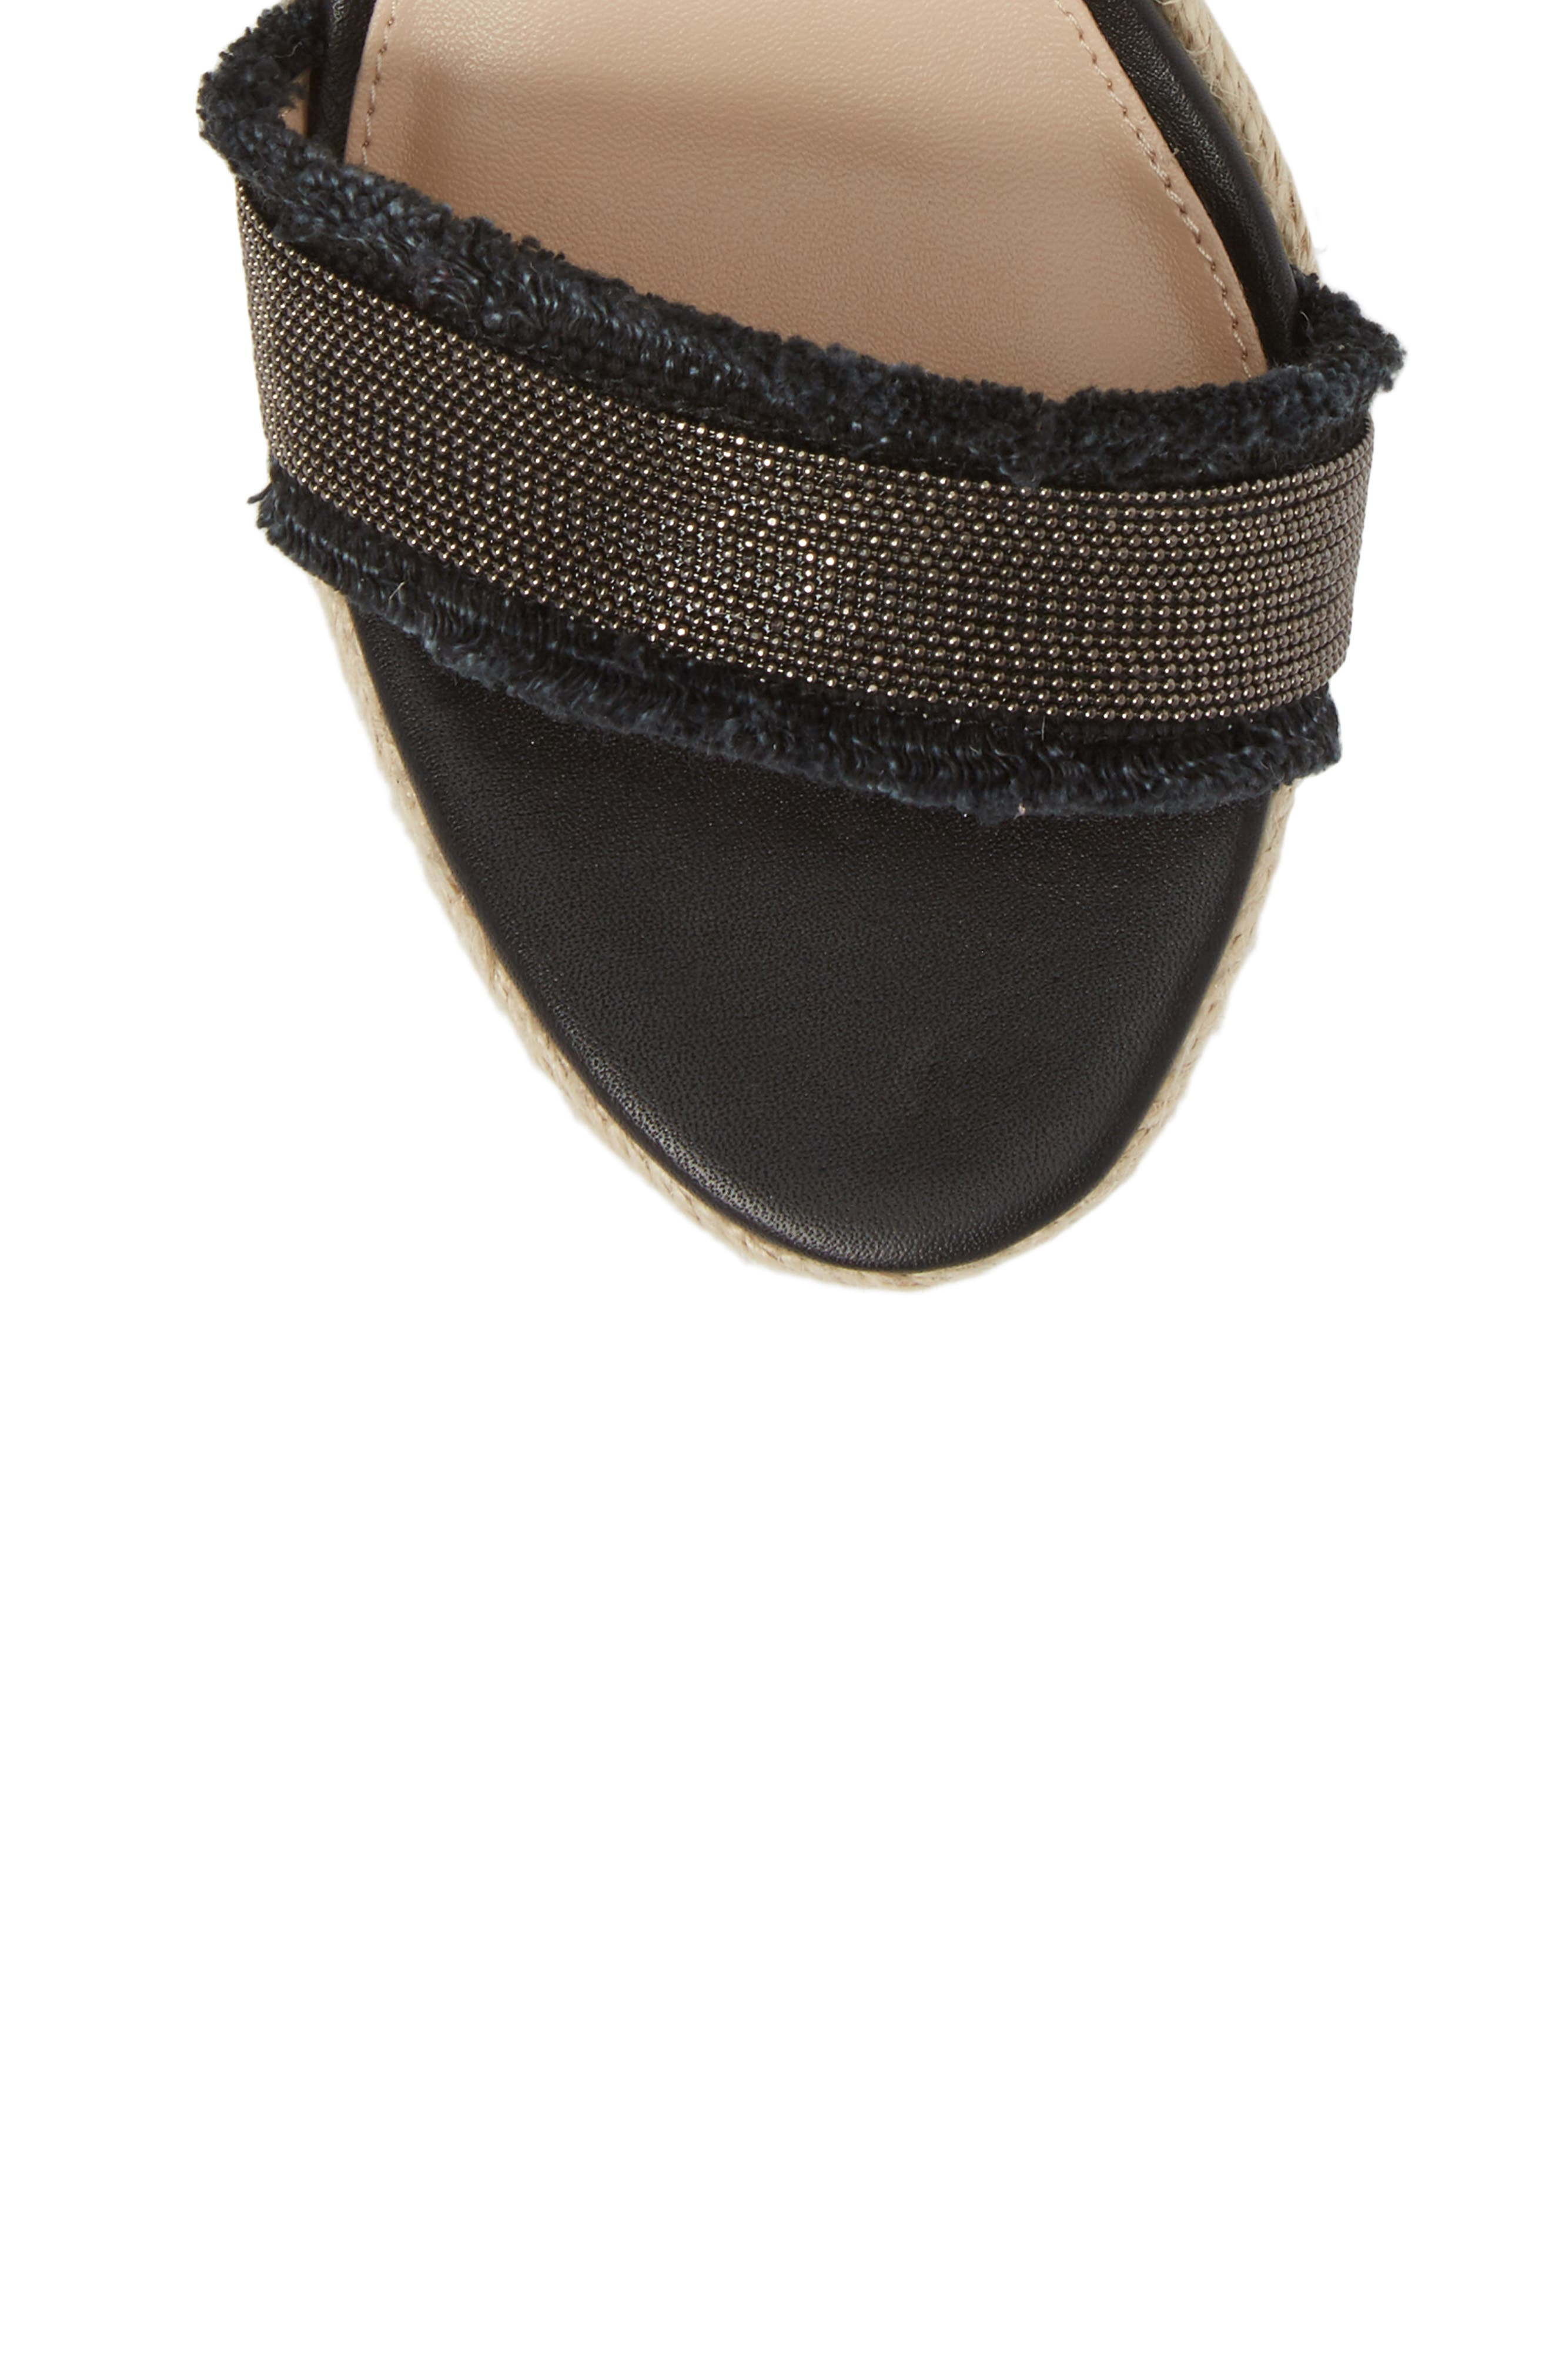 Radley Espadrille Wedge Sandal,                             Alternate thumbnail 5, color,                             BLACK LEATHER